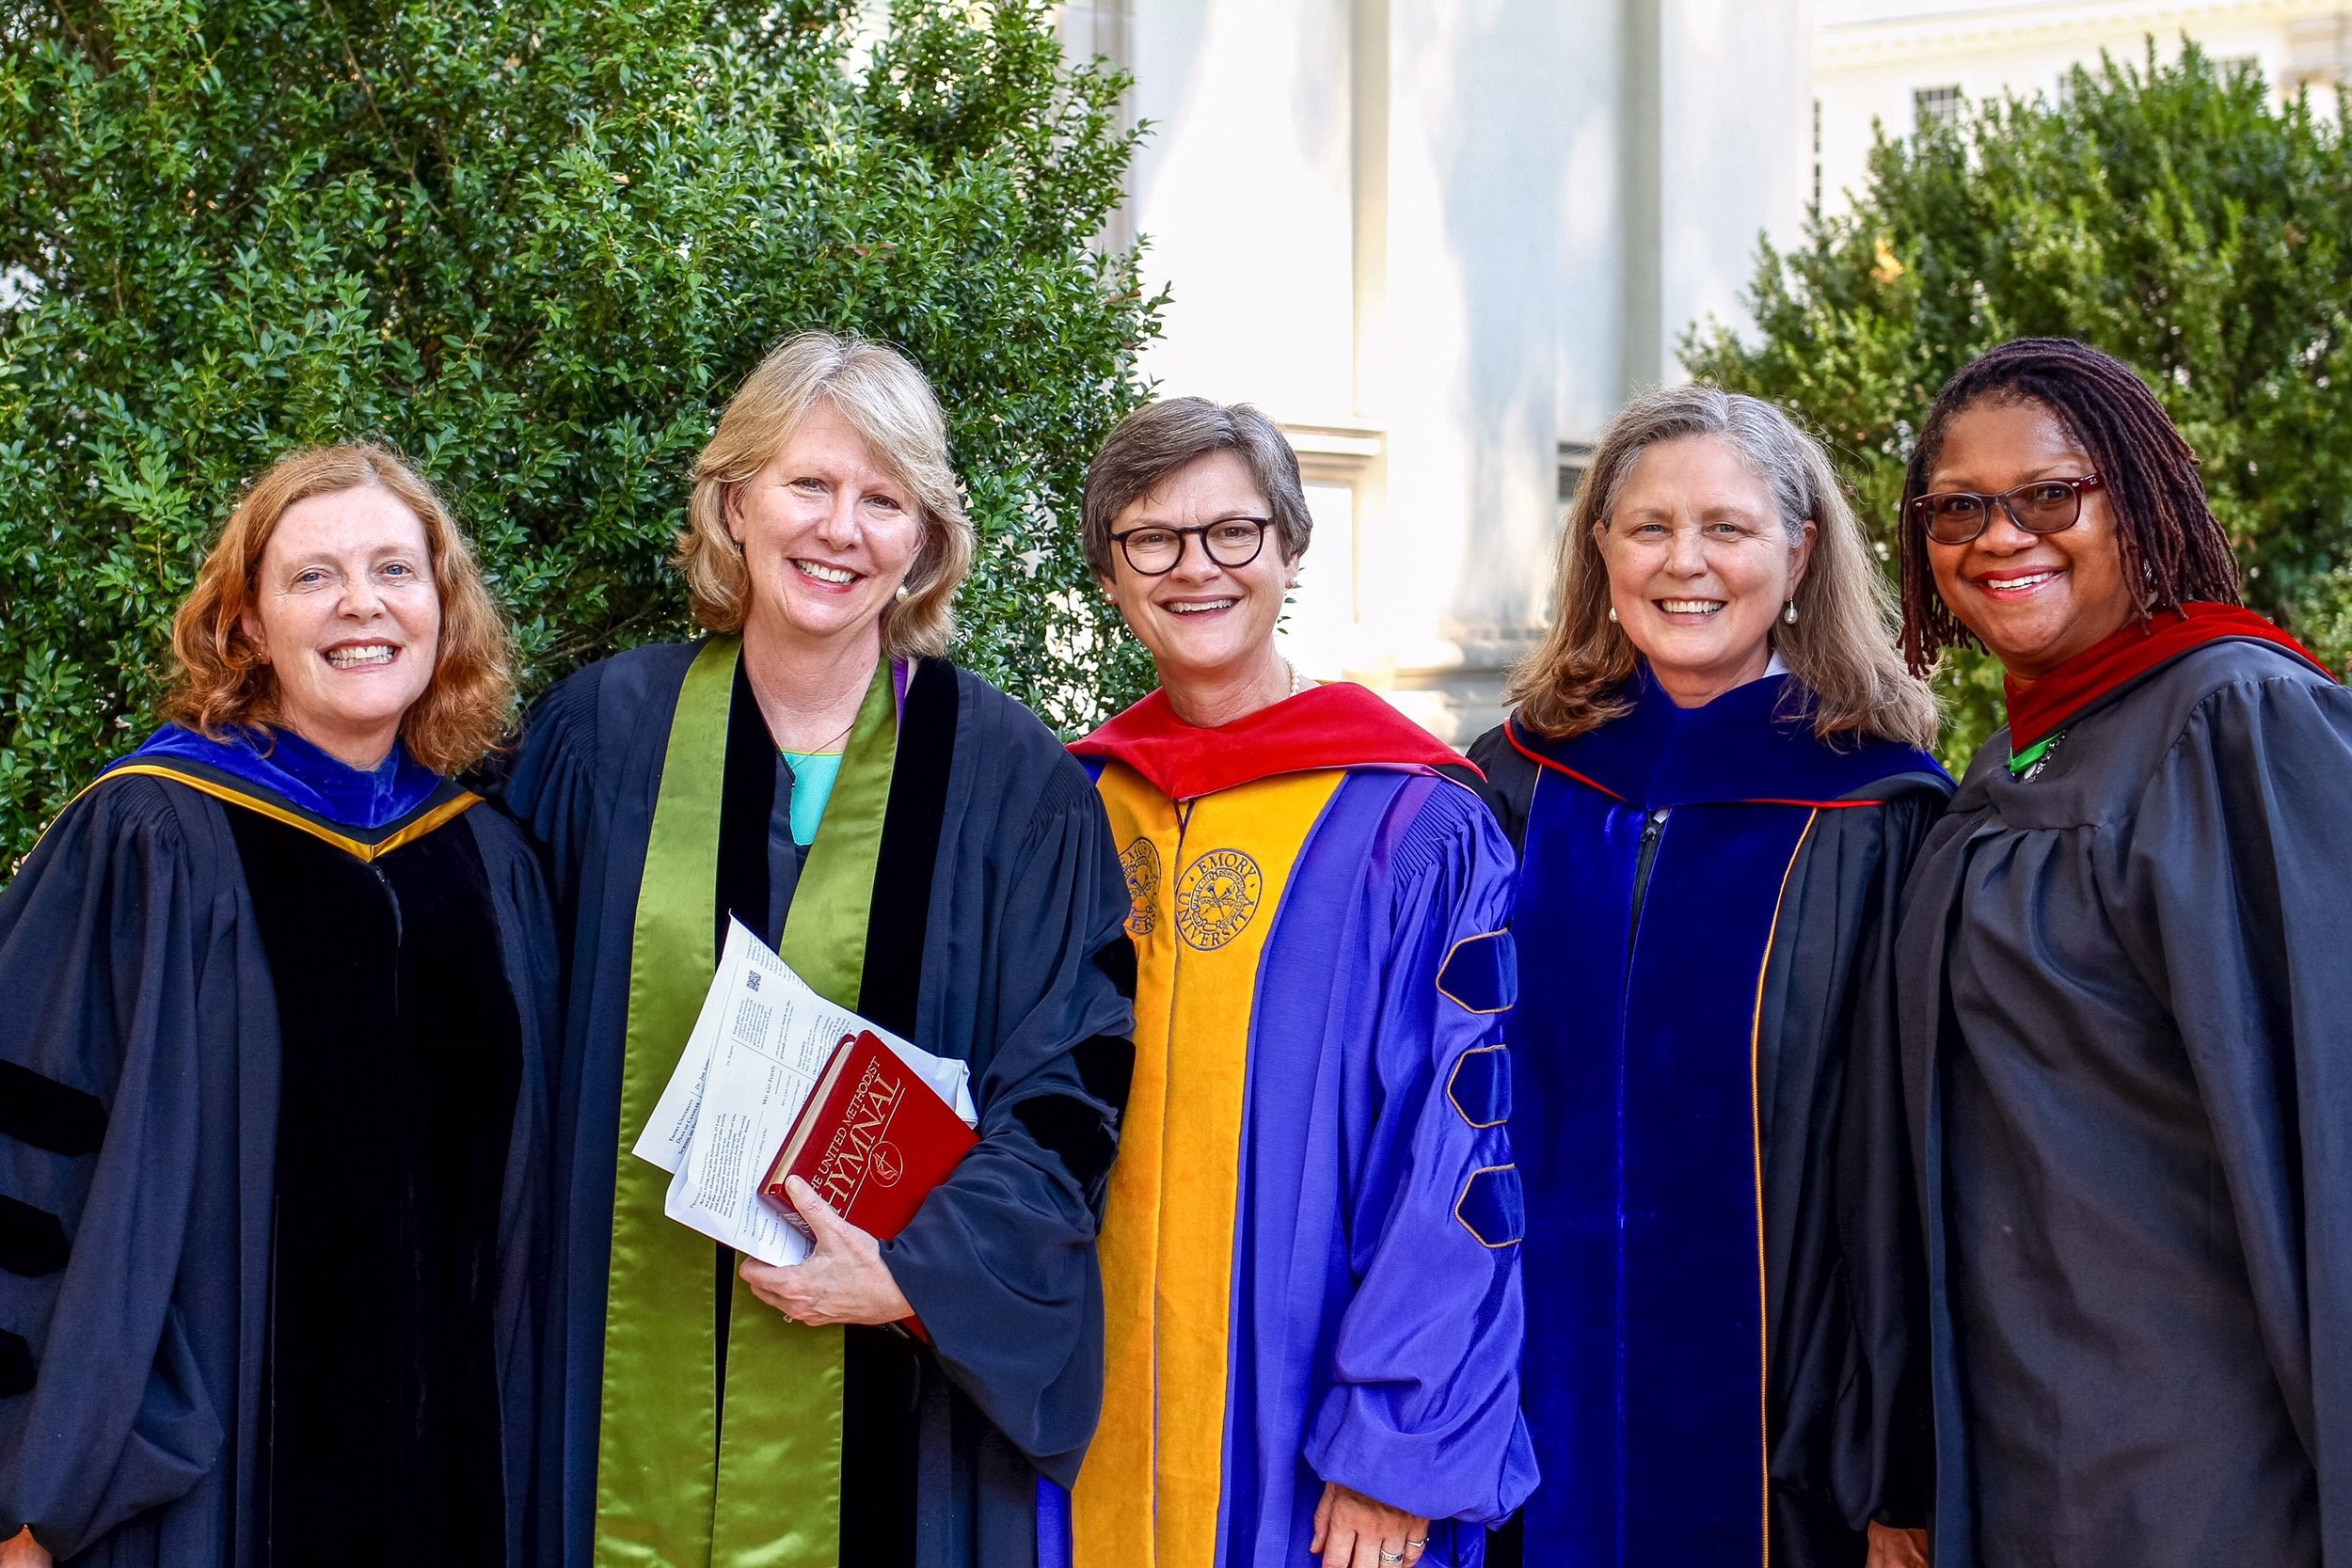 We once again celebrated our connections with Emory, and were honored to be led in worship by these strong leaders in the church and the academy: Dr. Claire Sterk, Rev. Sue Haupert-Johnson, Rev. Dr. Alice Rogers, Dr. Jan Love, and Rev. Bridgette Young Ross.